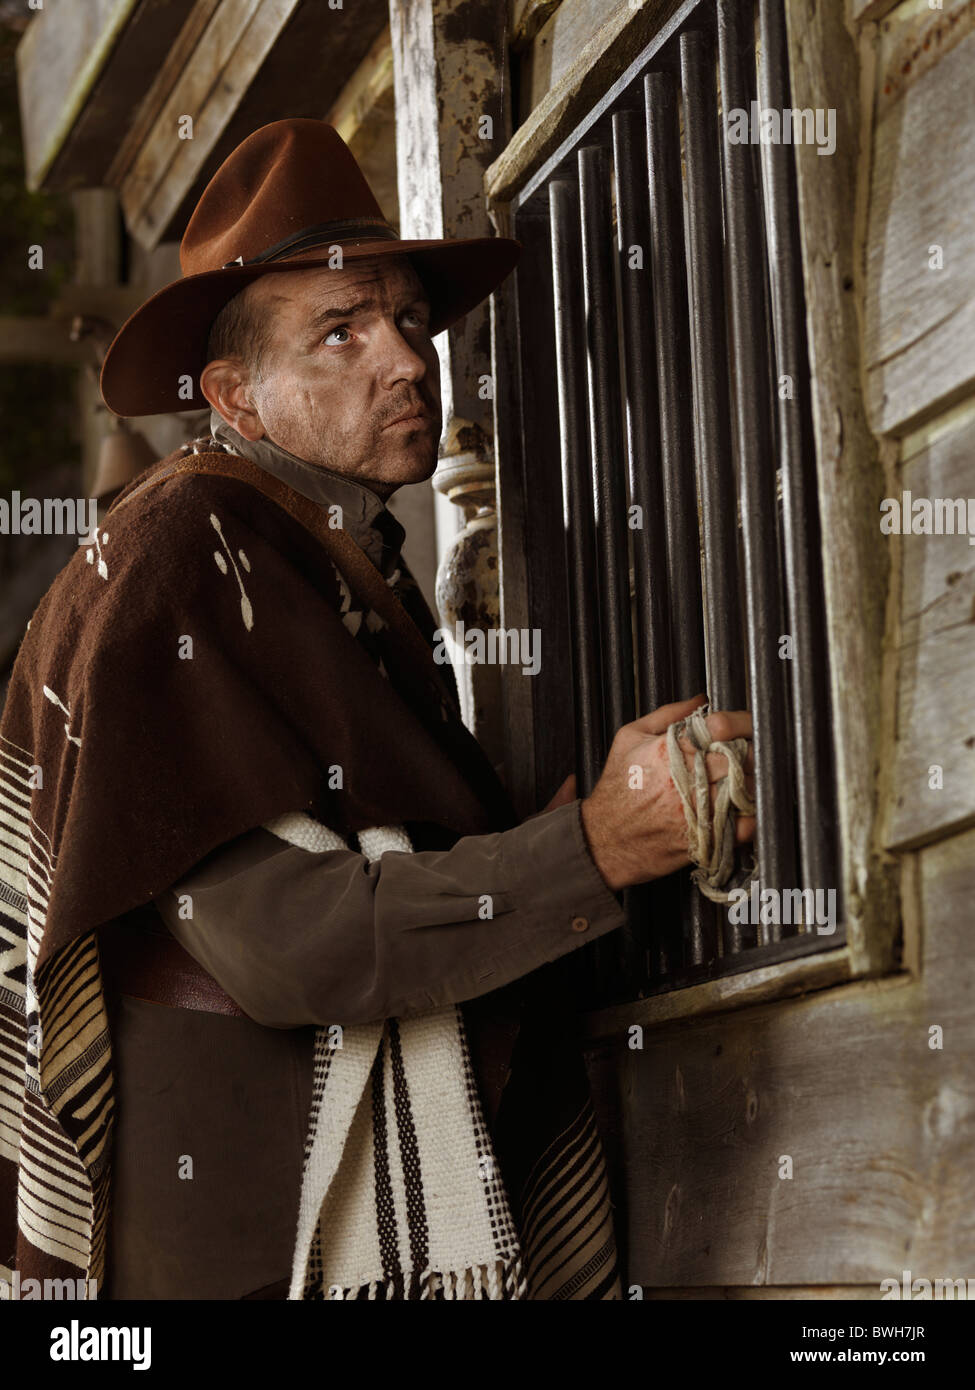 Cowboy standing at a barred window, attempting to rob a bank at night - Stock Image